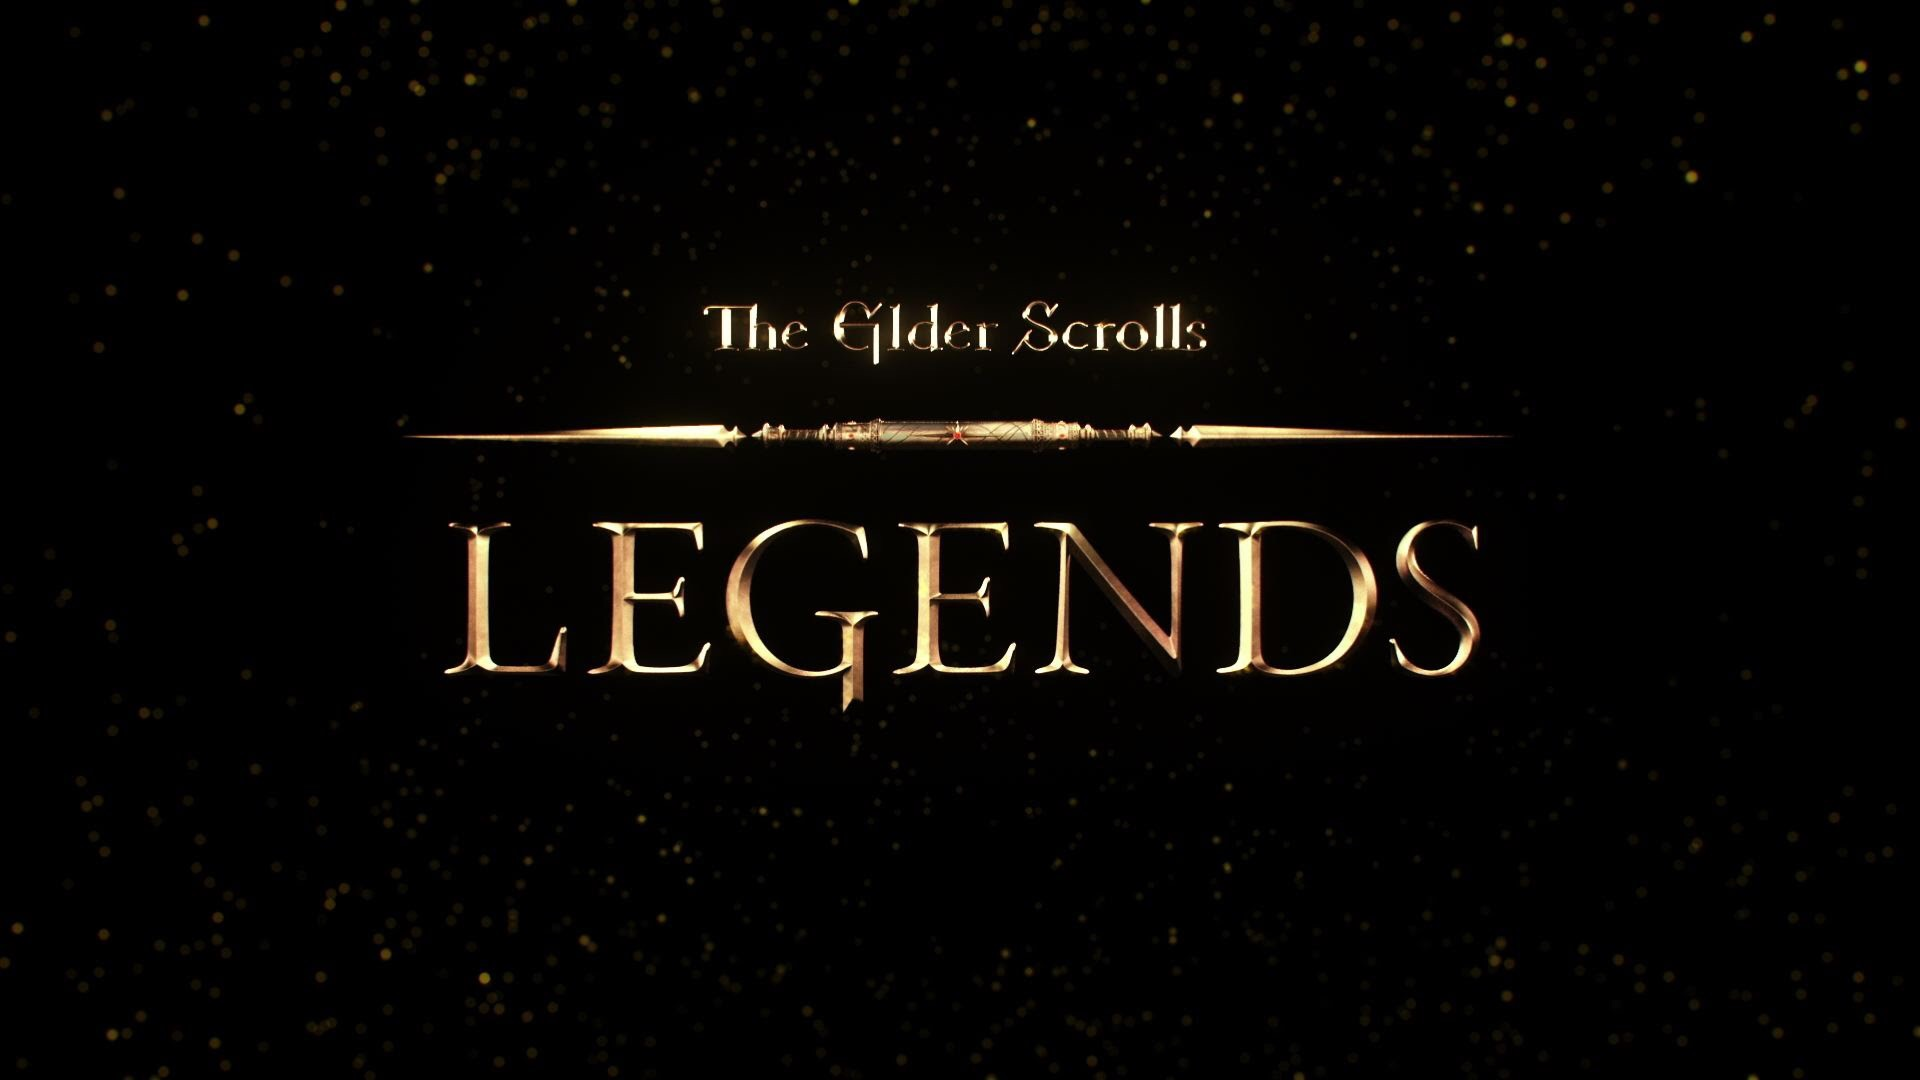 The Elder Scrolls: Legends will not be getting new content for the foreseeable future